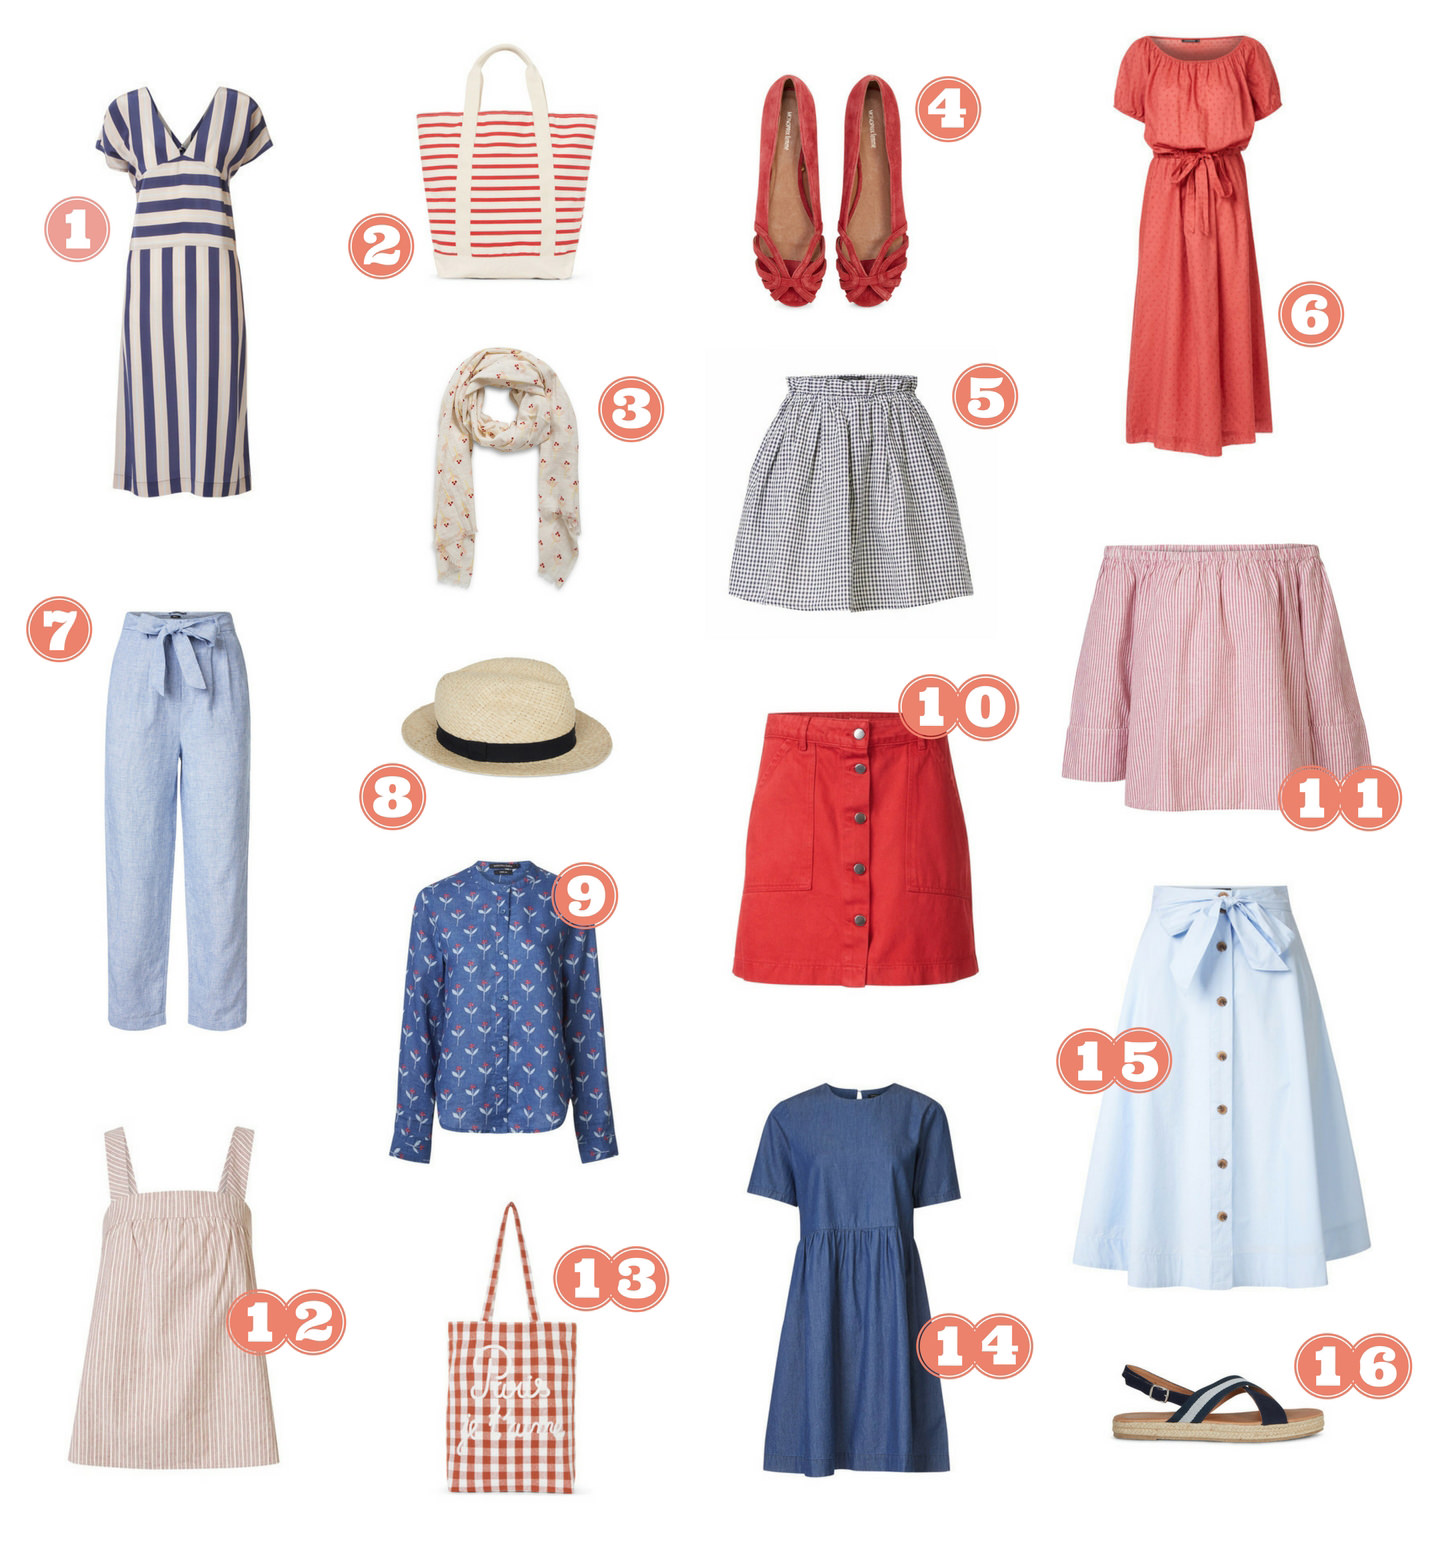 Blog-Mode-And-The-City-Looks-Wishlit-soldes-Monoprix-montagePE17